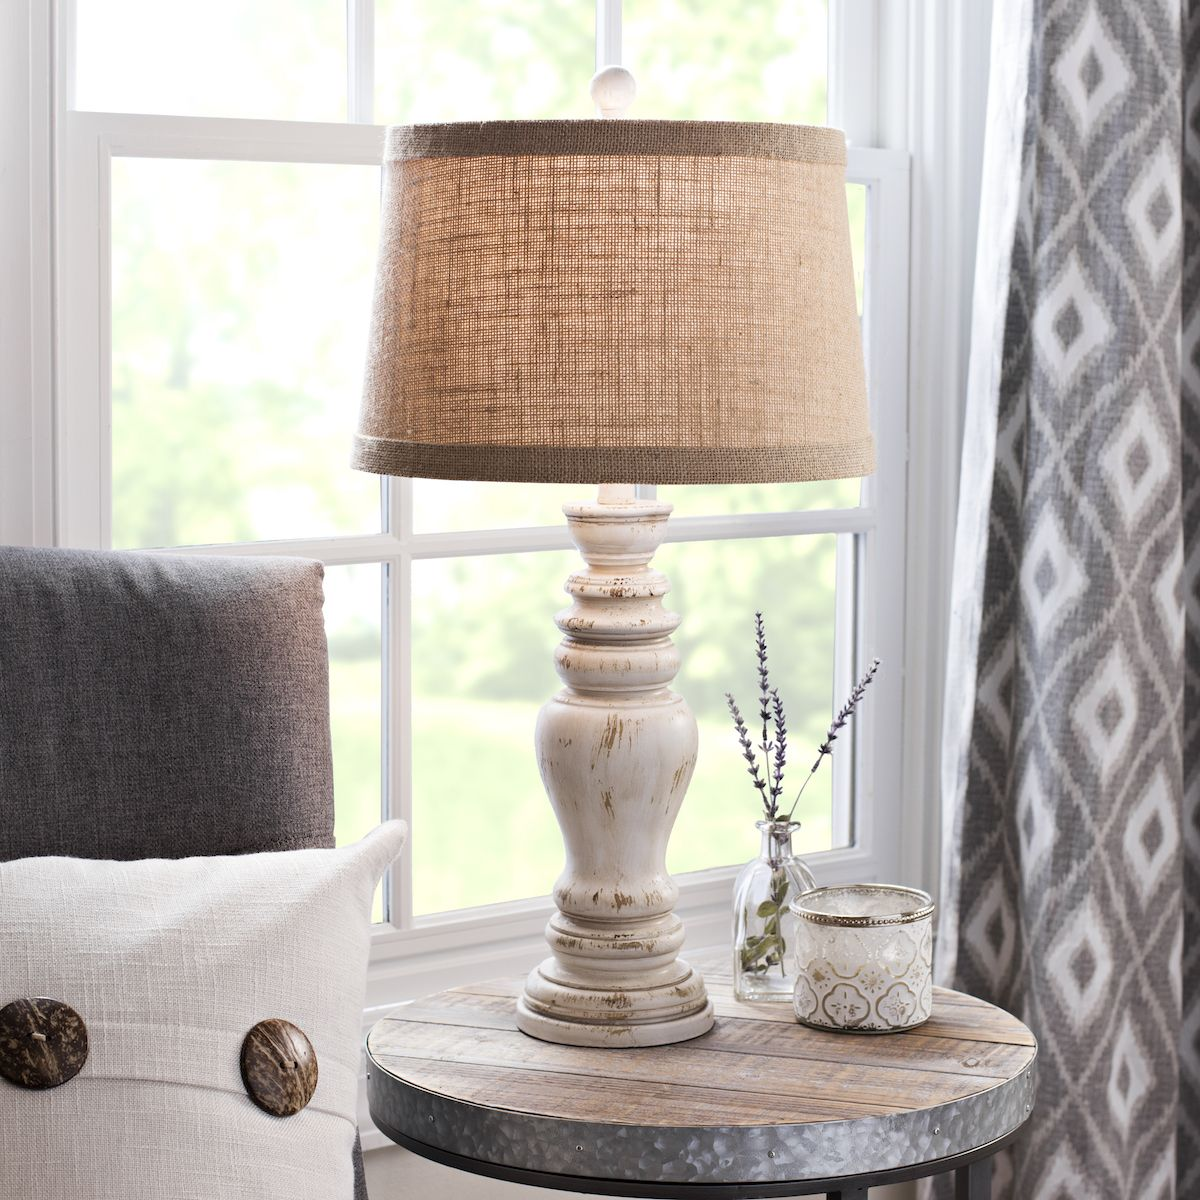 Distressed Farmhouse Living Room: Product Details Rustic Distressed Cream Table Lamp